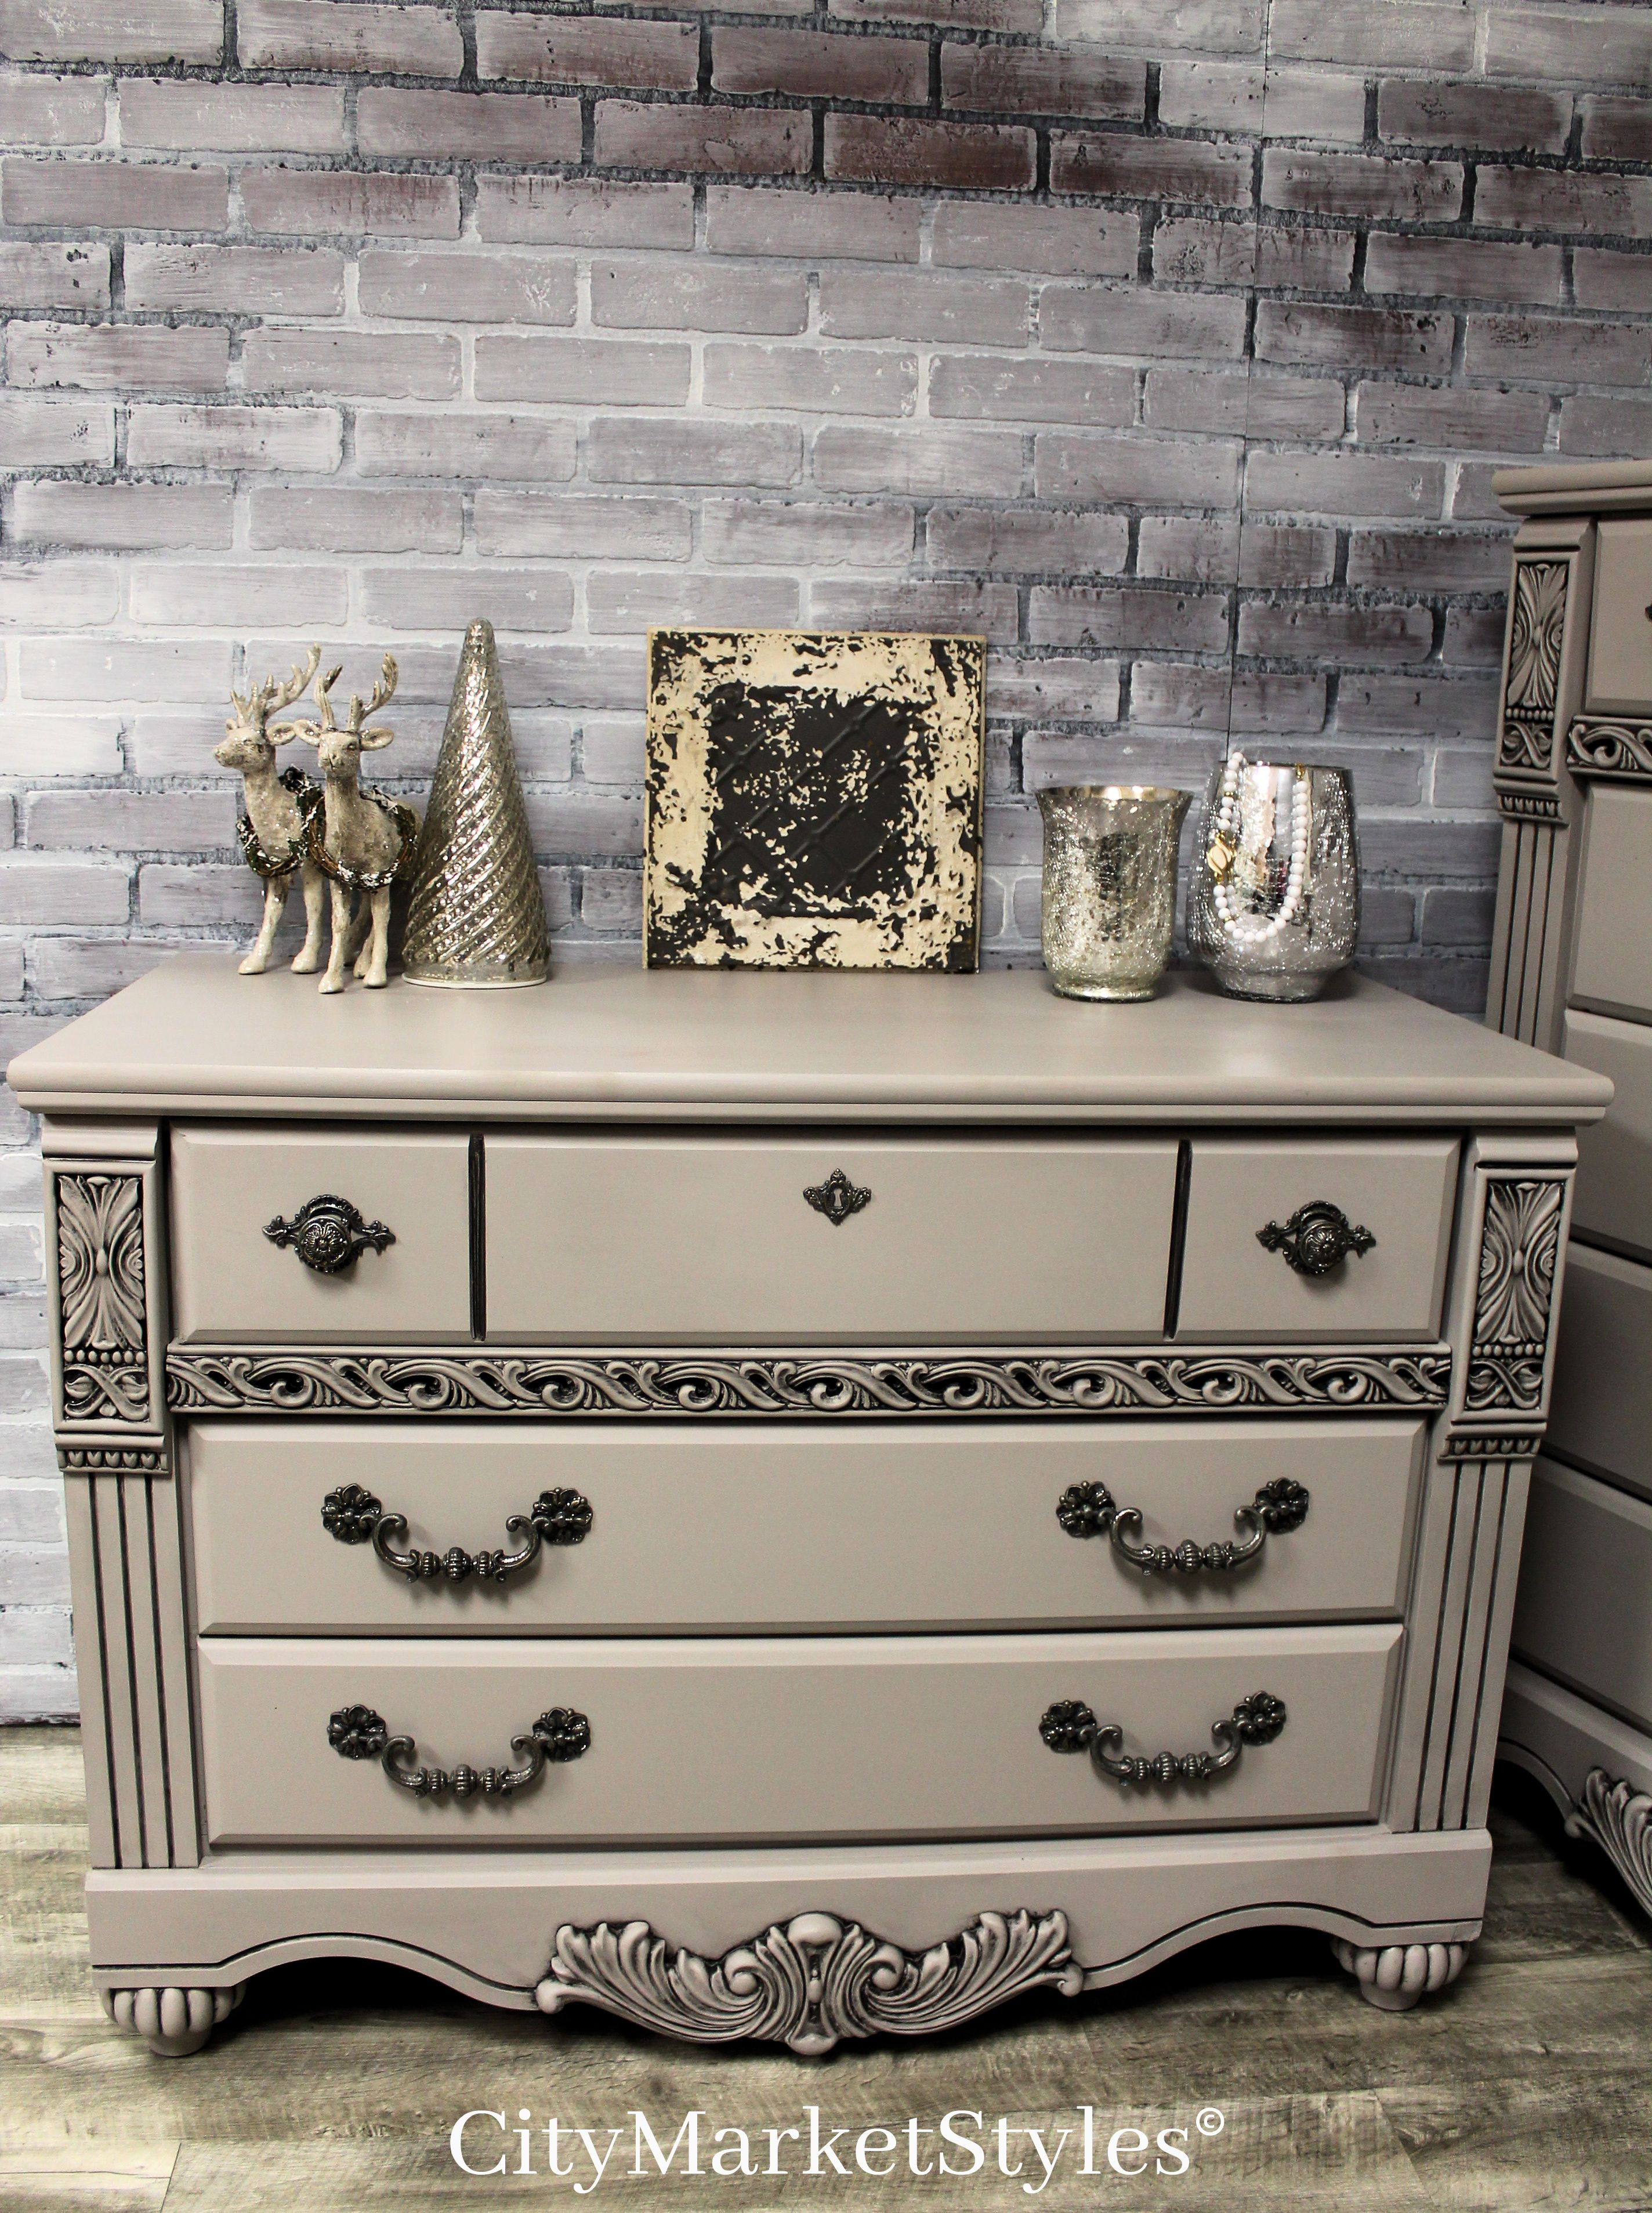 painted bedroom furniture pinterest. Small Dresser Painted In Rocky Bluffs Grey With Dark Glaze Accents. | Bedroom Furniture By City Market Styles Pinterest